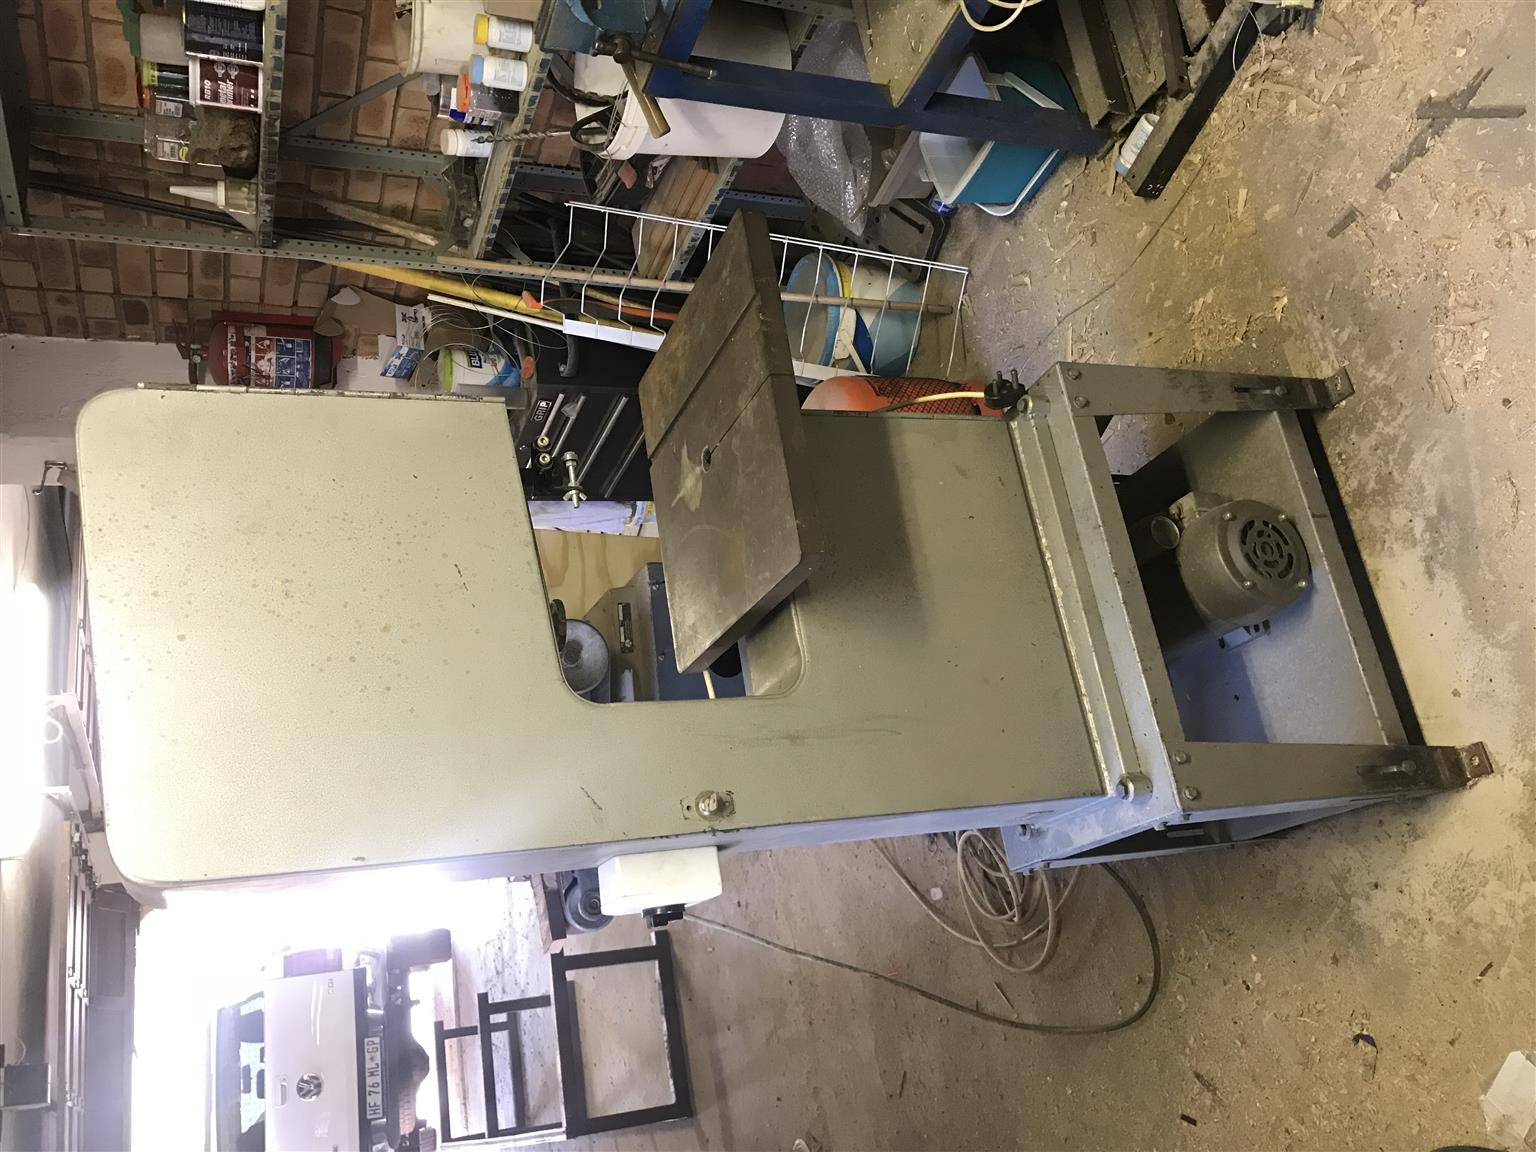 woodworking bandsaw for sale - woodworking projects & ideas